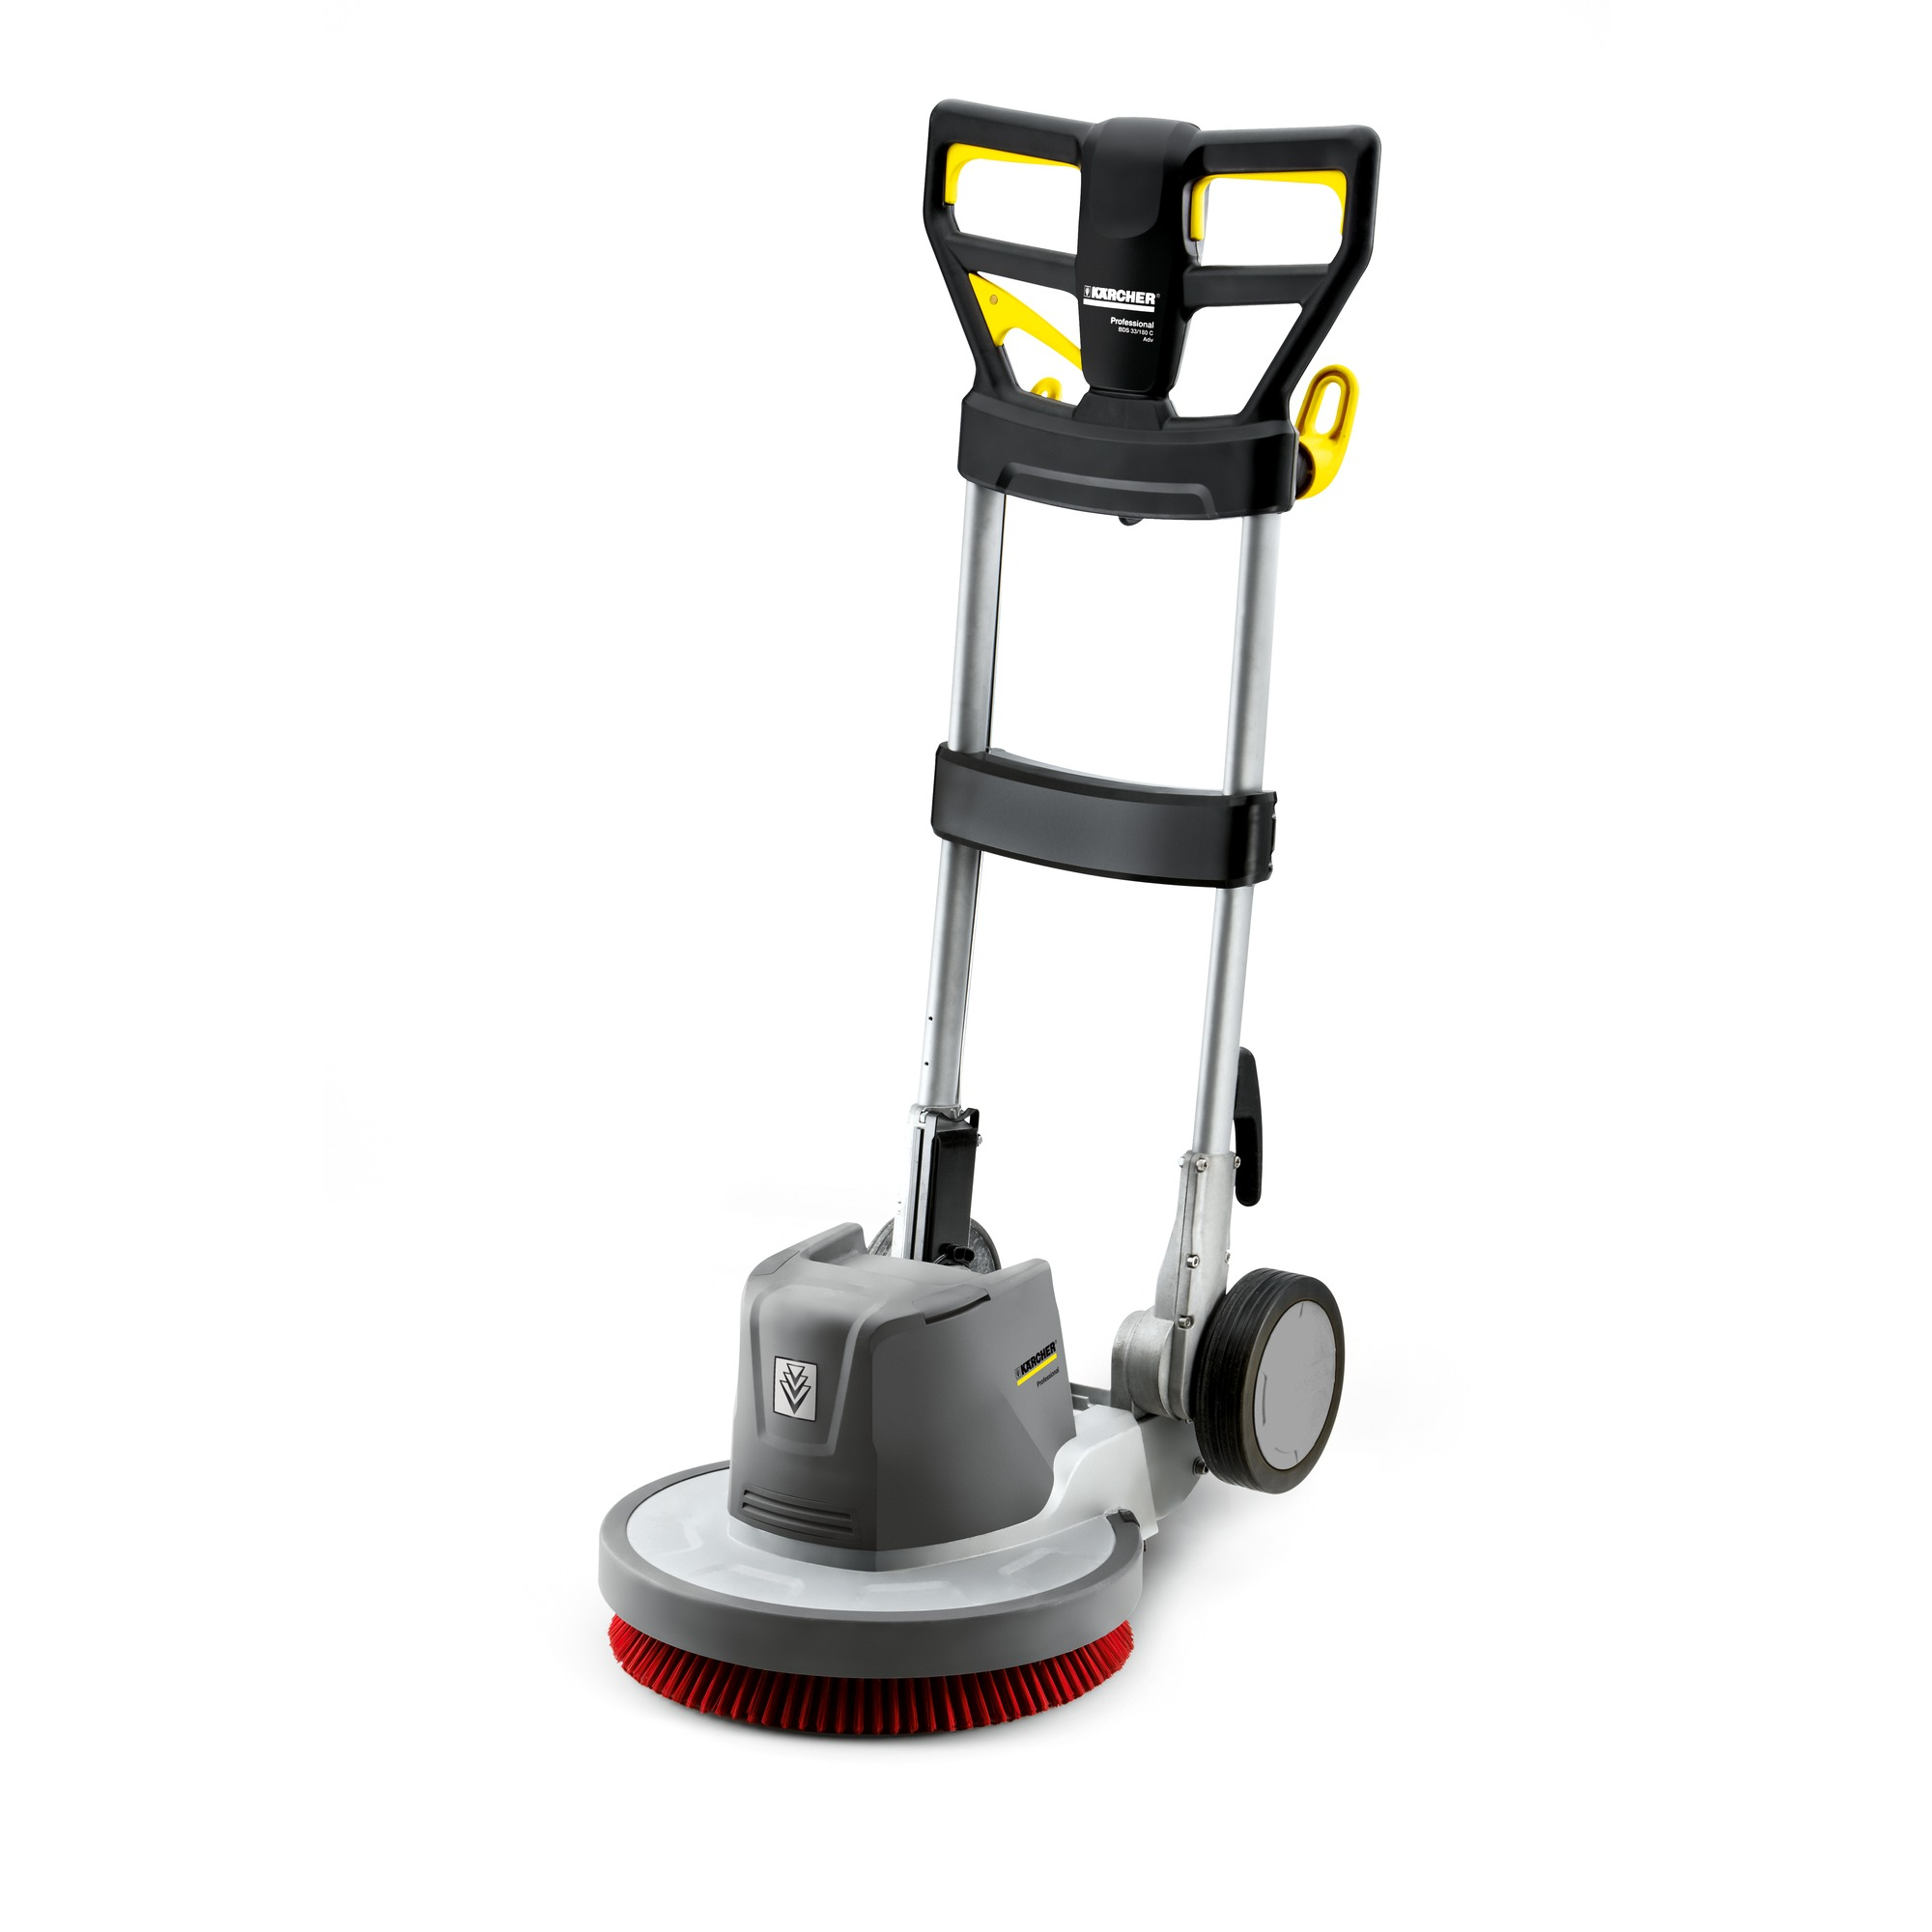 BDS 43/Duo C Adv 1.291-223.0 KARCHER - KARCHER PREMIER CENTER